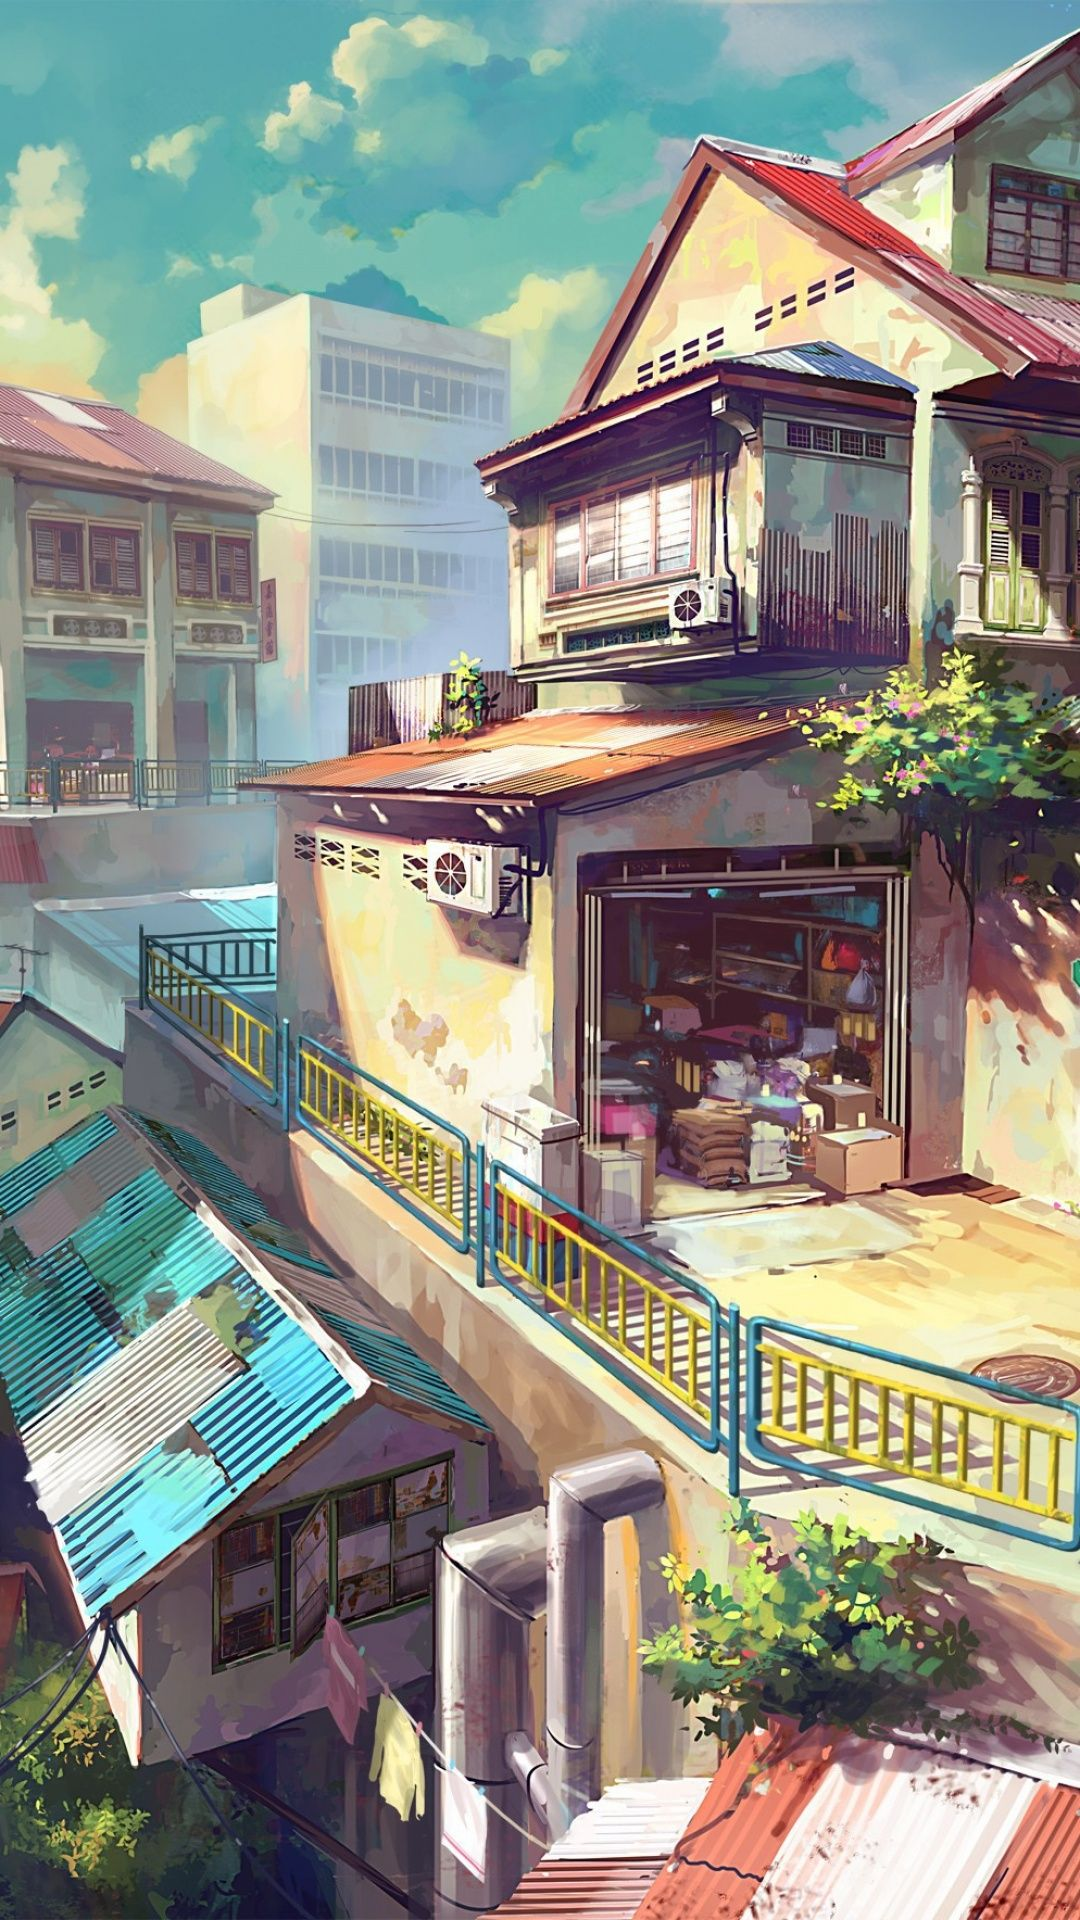 Japanese Anime Painting In 2020 Anime Scenery Wallpaper Anime